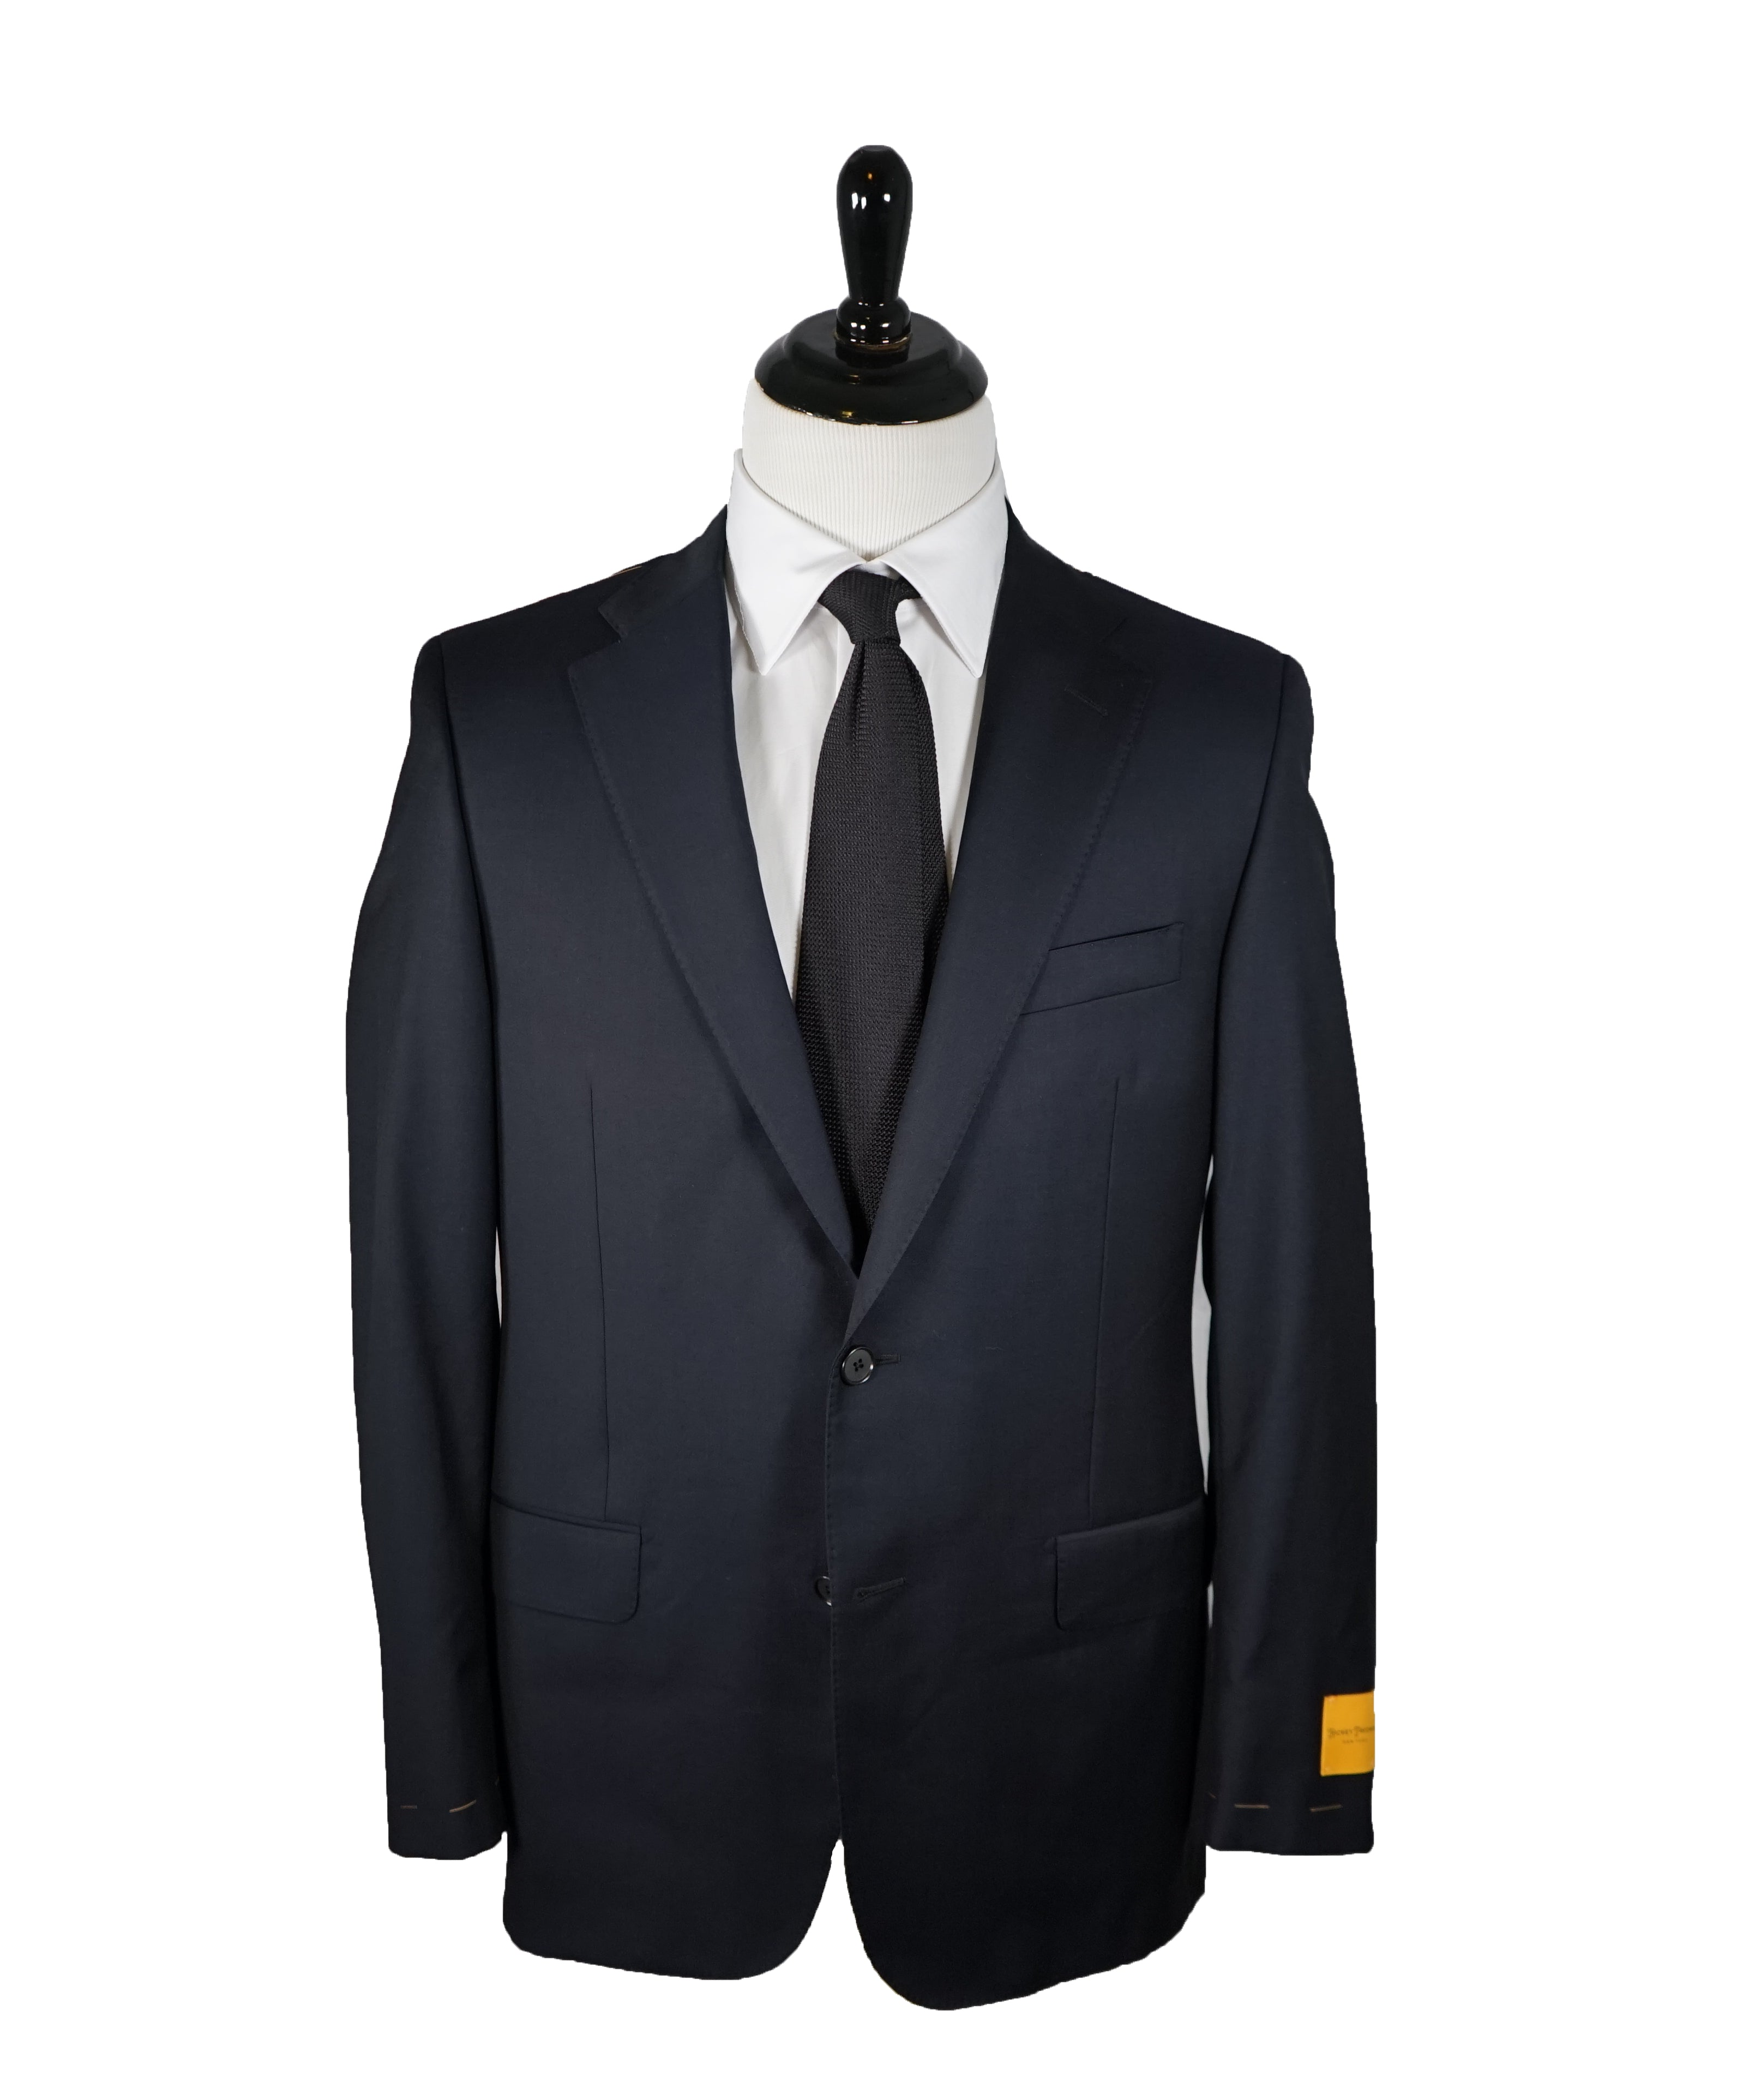 HICKEY FREEMAN LORO PIANA - Navy 2-Button Suit 150's Tasmanian Wool - 40R